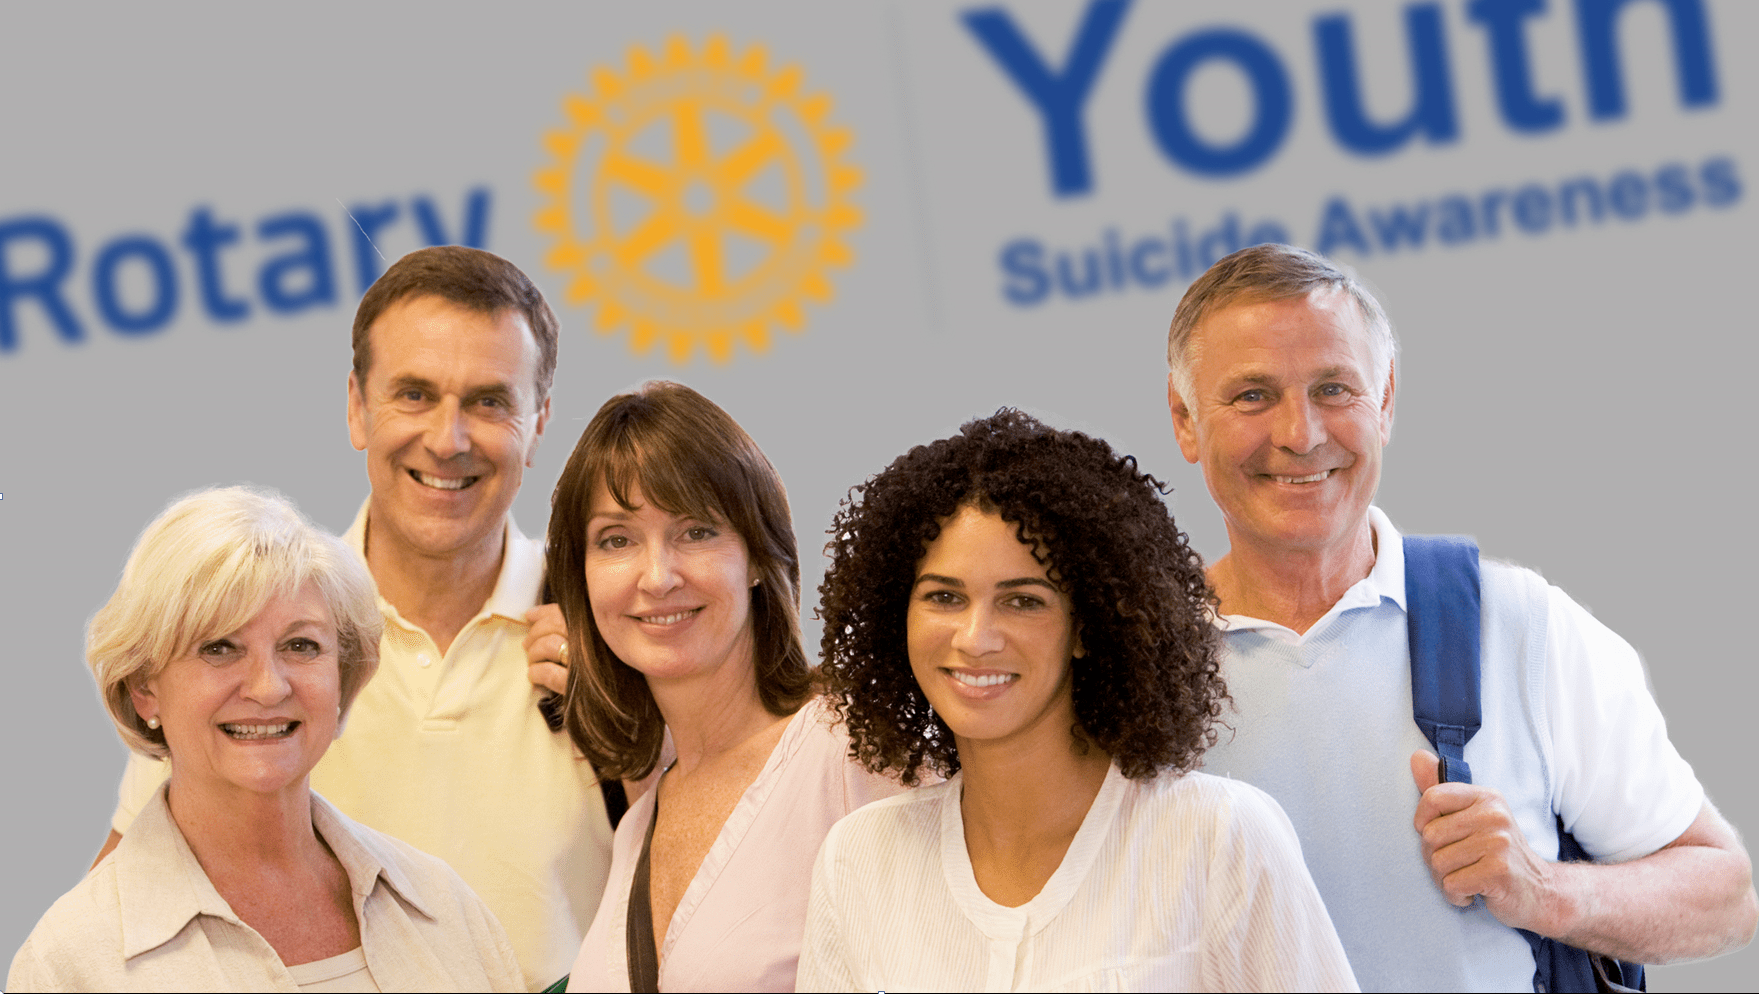 Youth Suicide Awareness team photo with a Rotary background